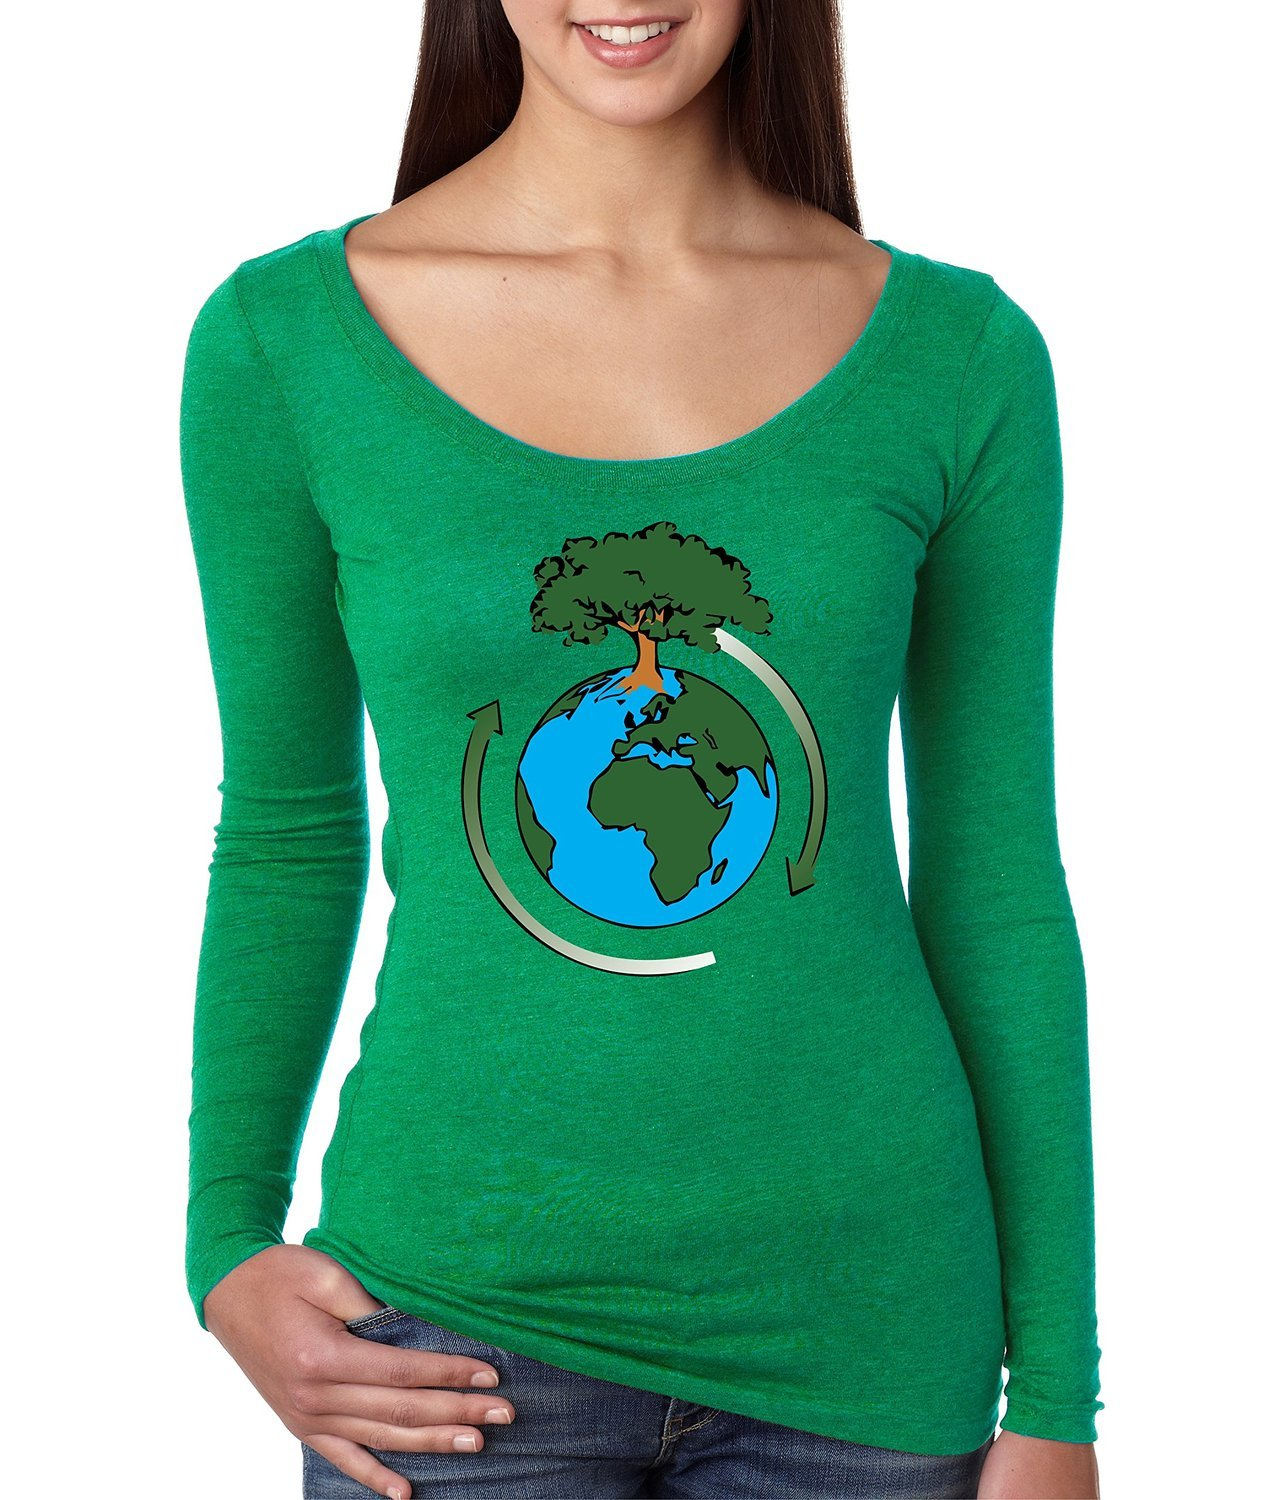 Primary image for Women's Shirt Earth Day Save The Planet Shirt